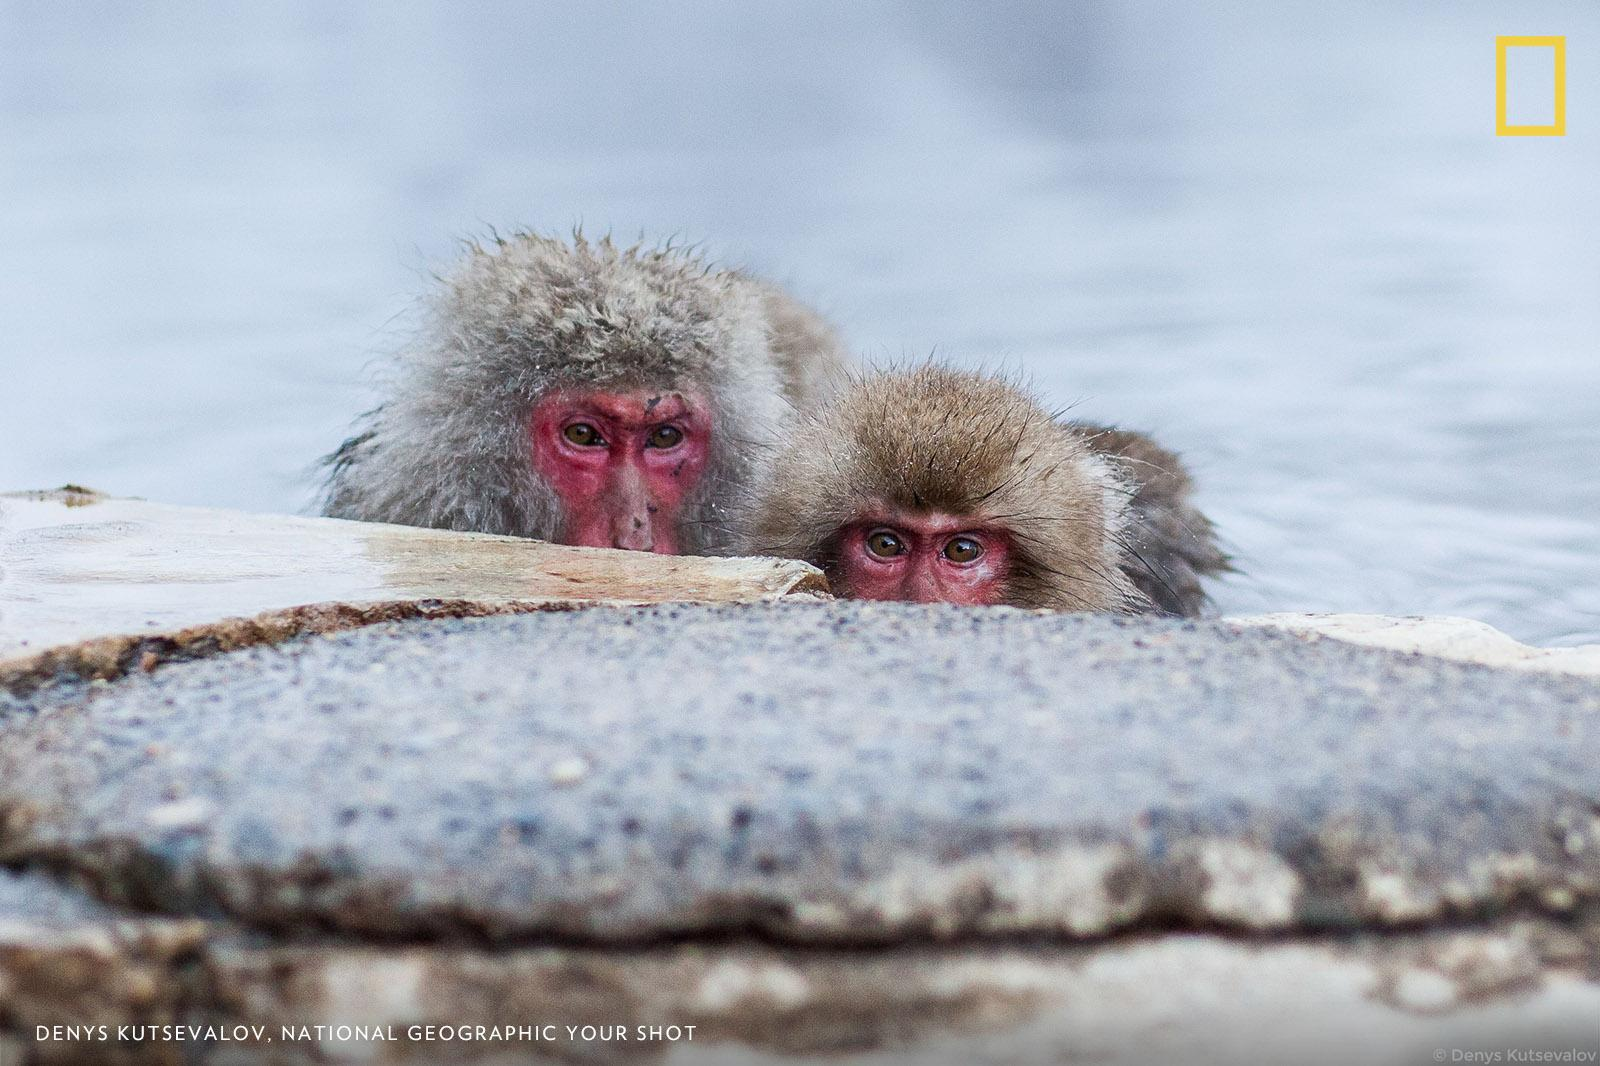 Help us caption this photo by #YourShot Photographer Denys Kutsevalov: https://t.co/r2ly8Ow70c https://t.co/irtWl2zEm2